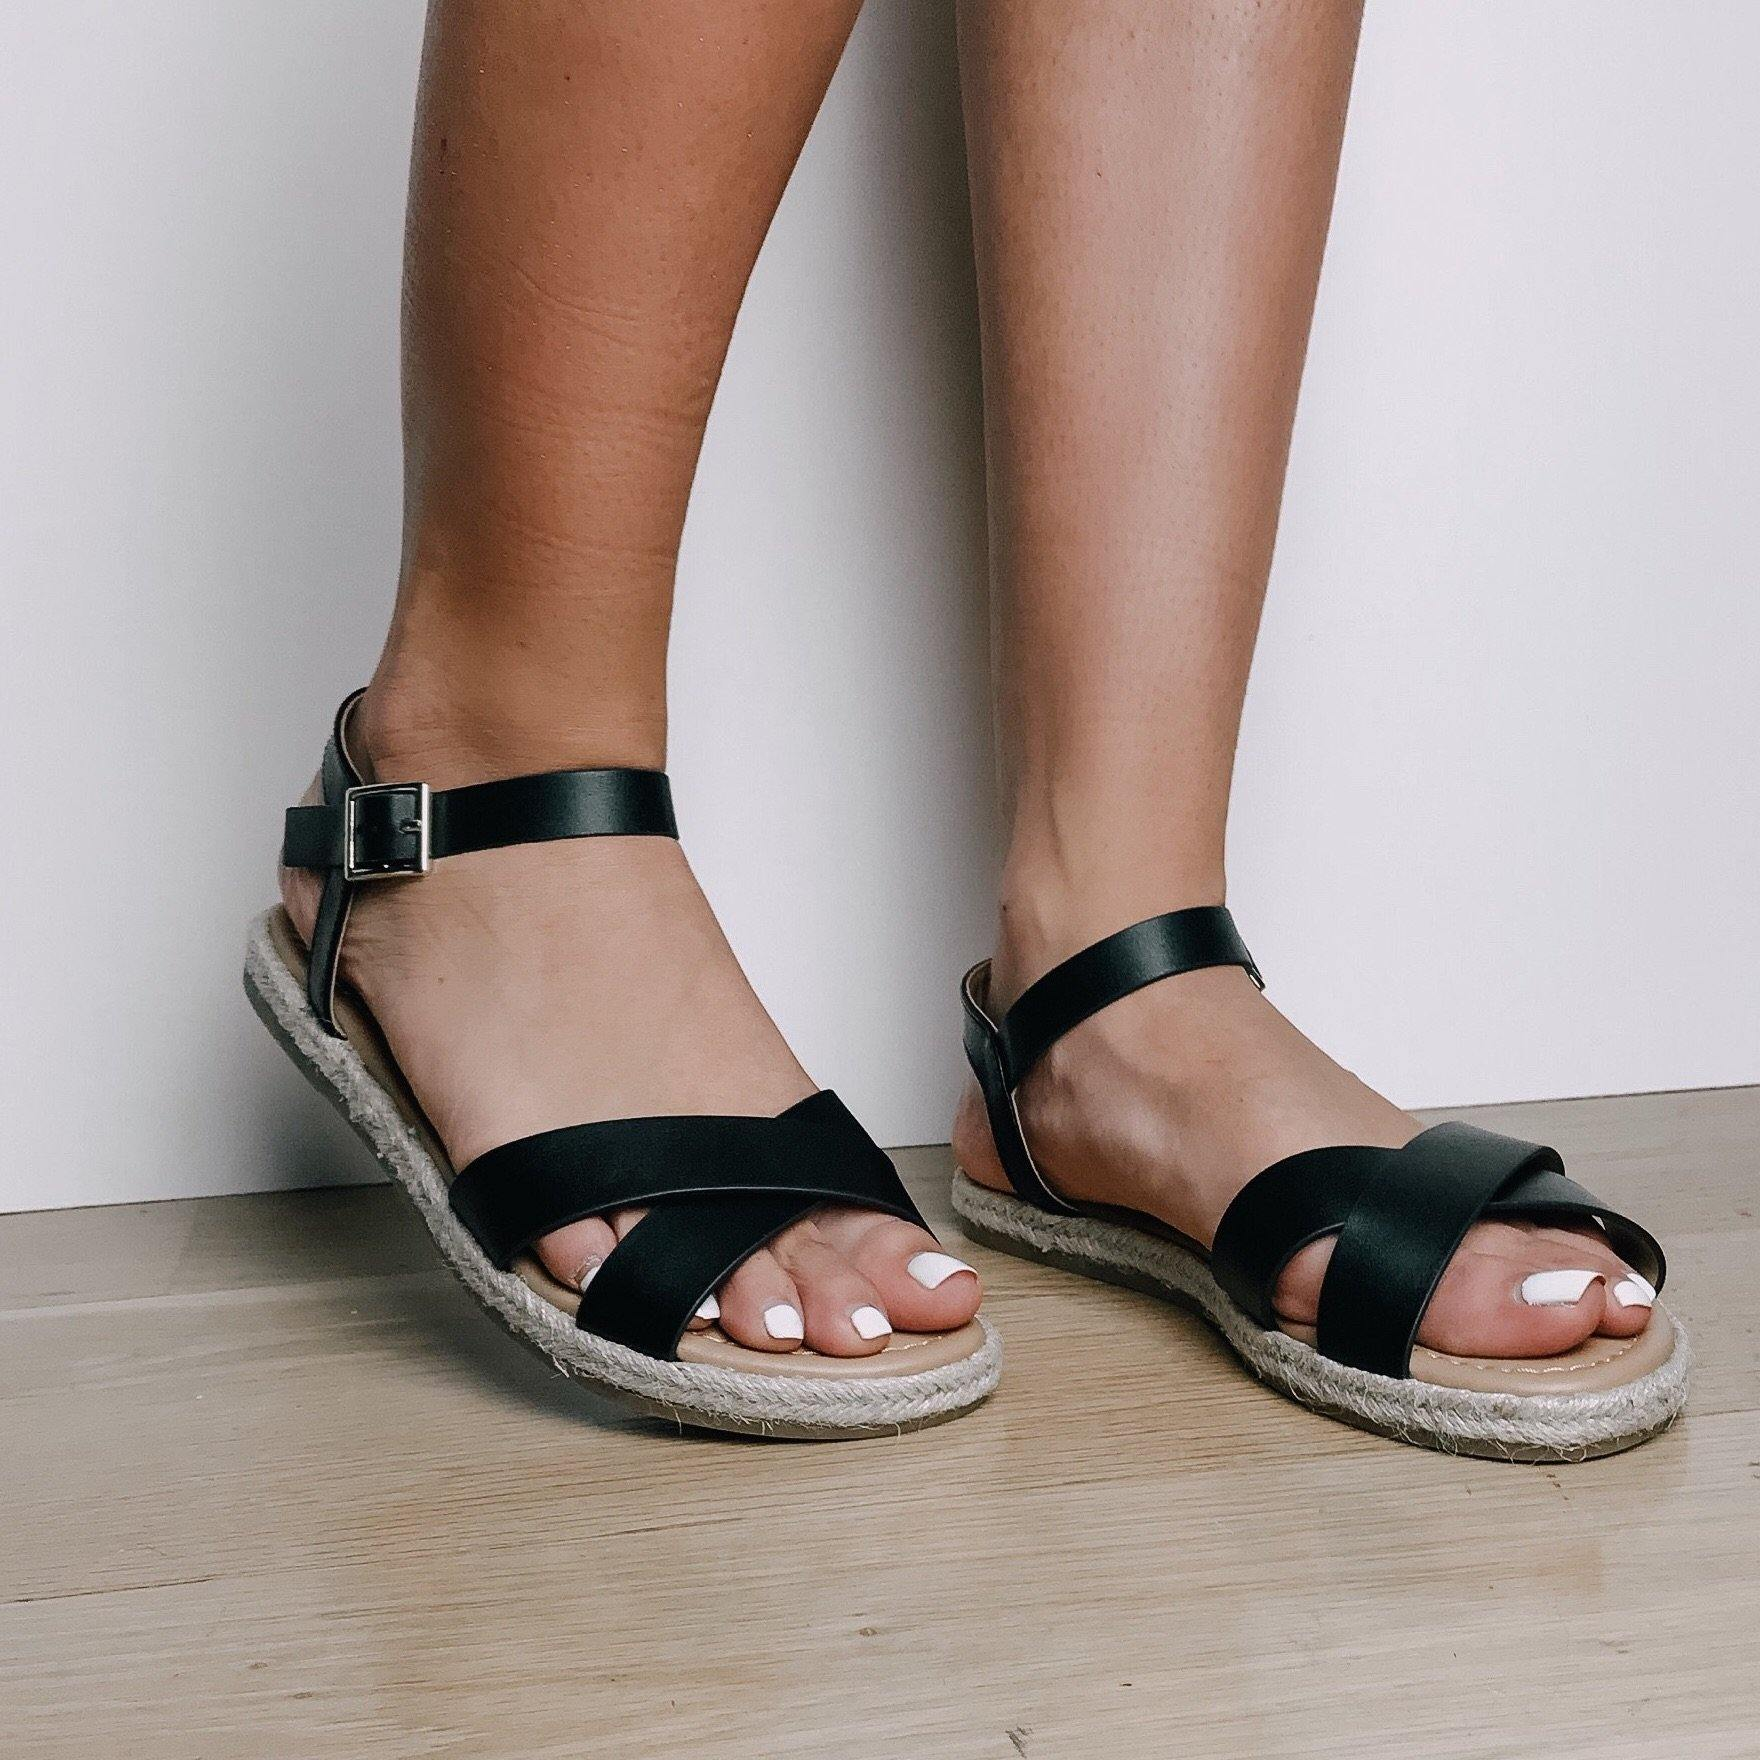 CADDIE BLACK CRISS-CROSS SANDALS - elbie boutique, LLC